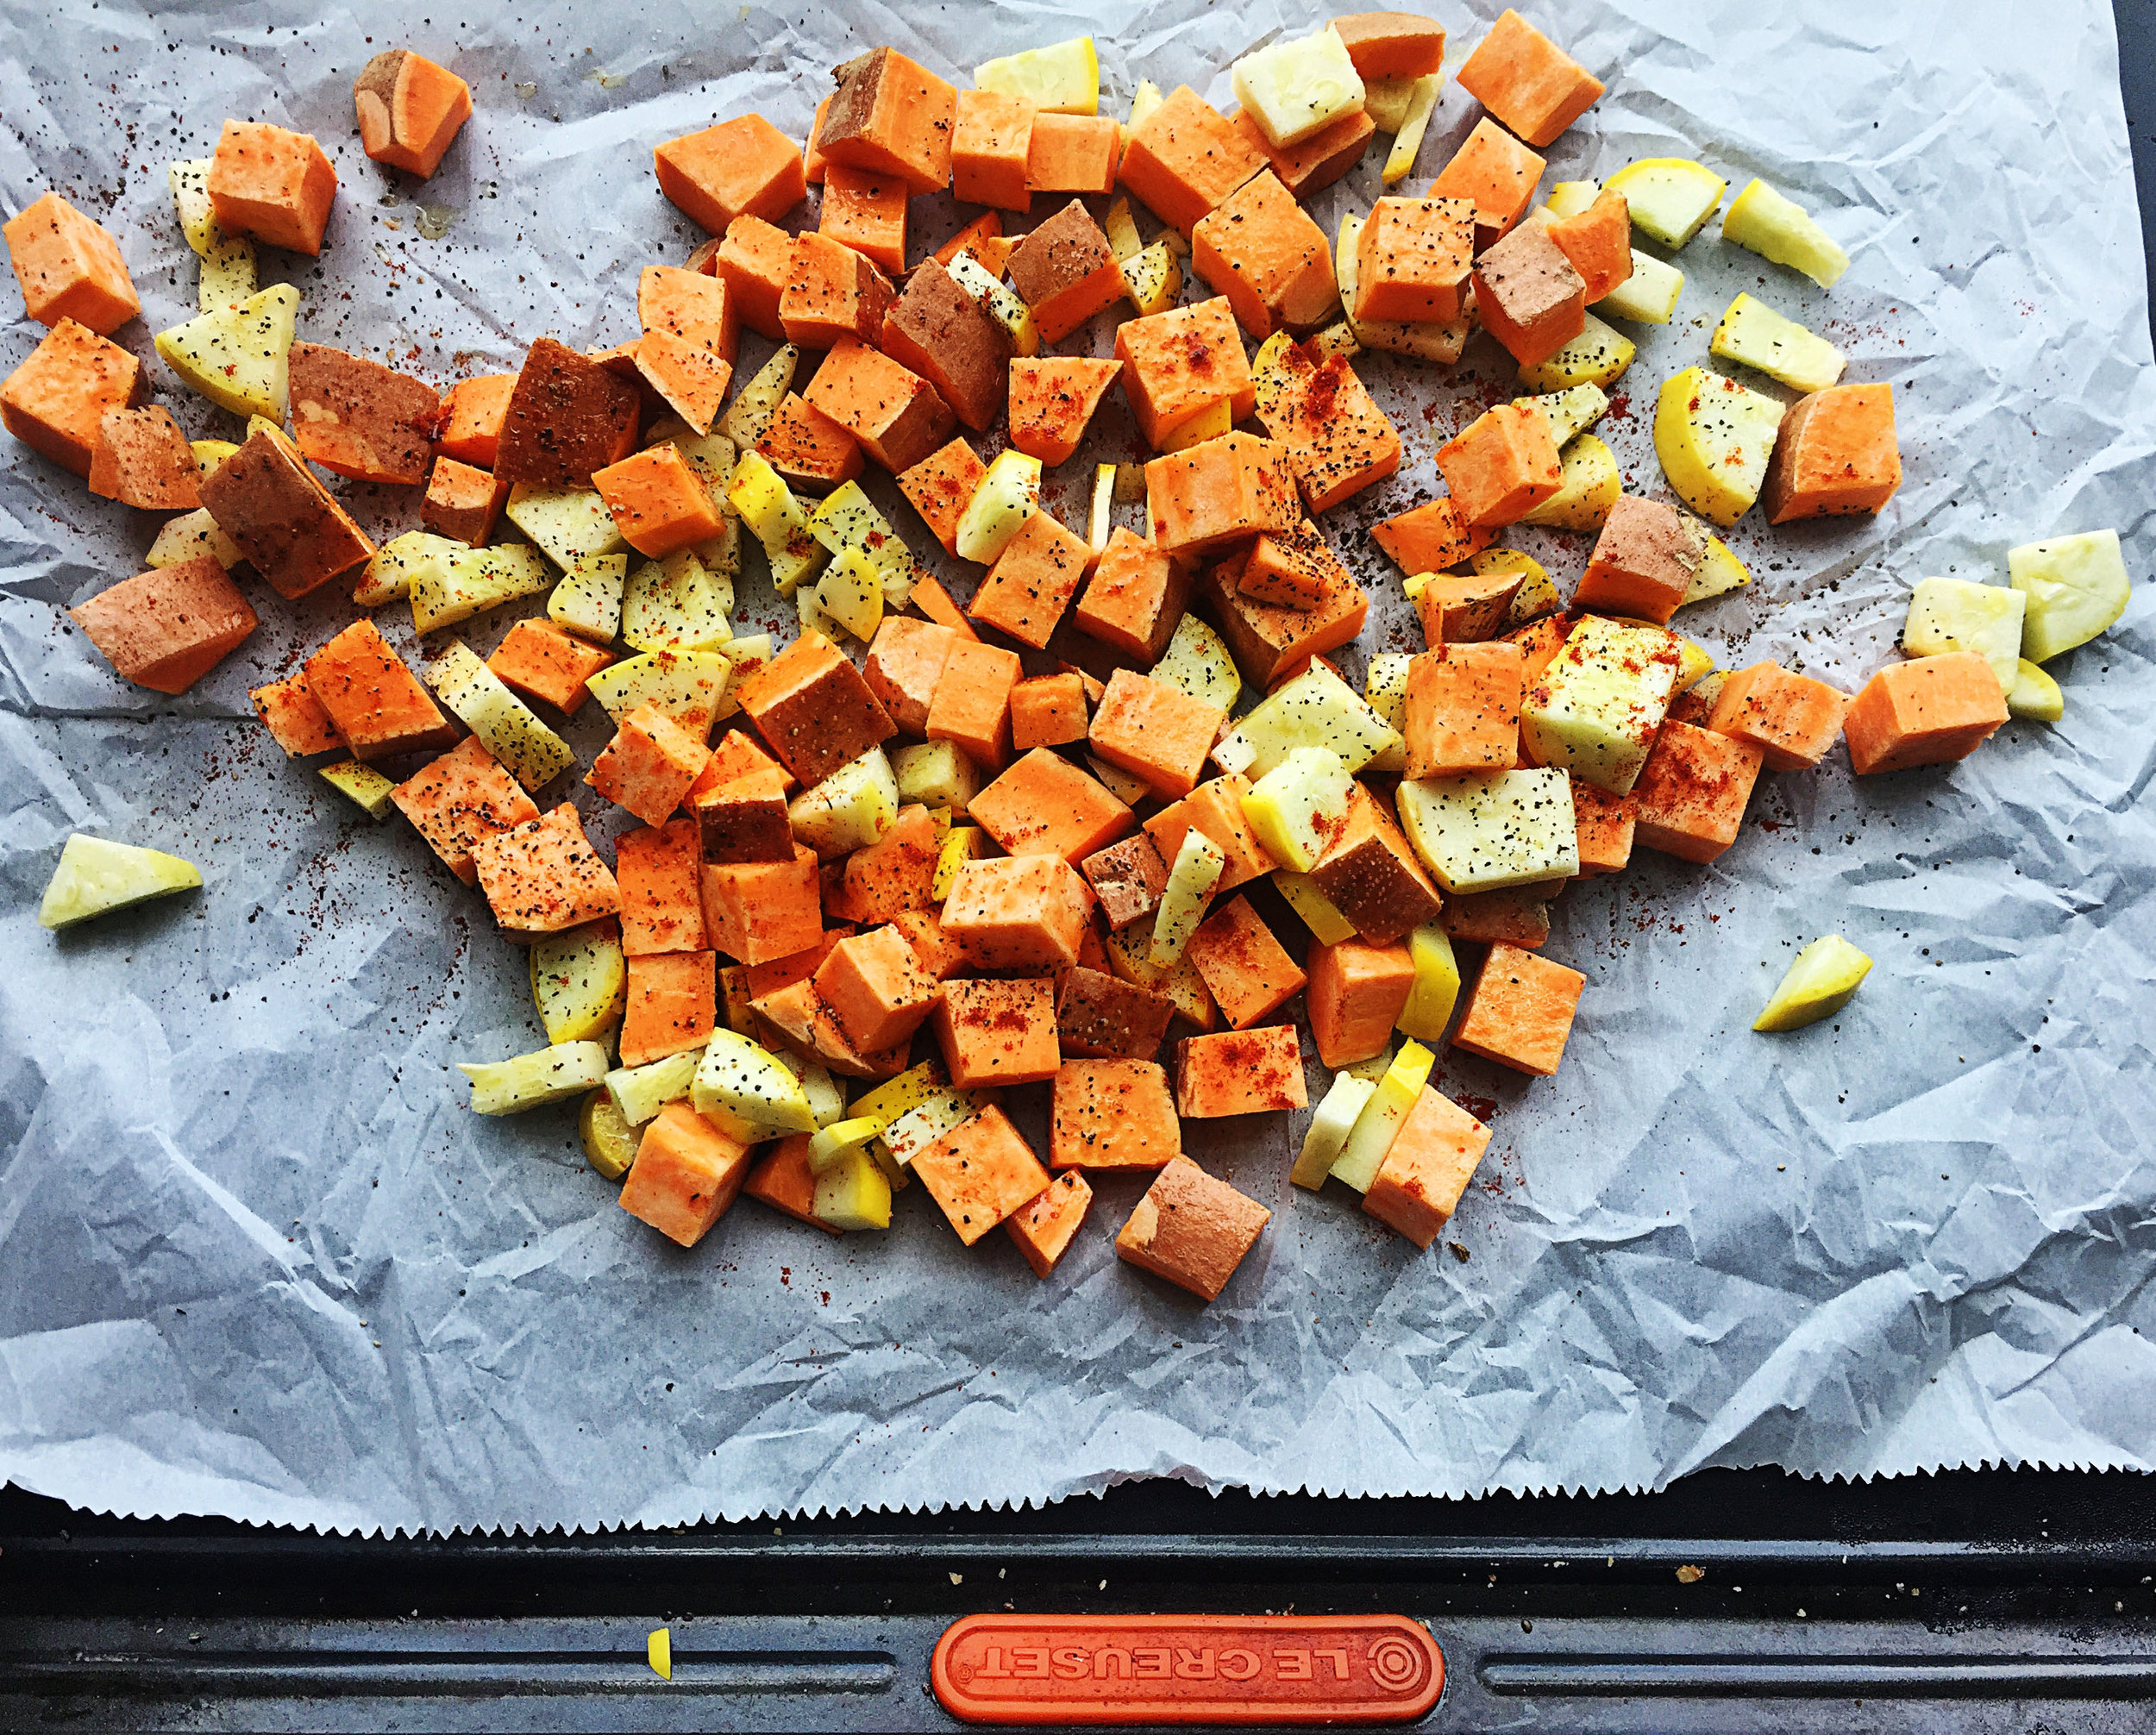 1. Place chopped sweet potatoes and zucchini in a mixing bowl with oil, salt, and pepper. Mix well. Place on a parchment lined baking sheet and place in oven for 25 minutes. Set aside to cool when done.